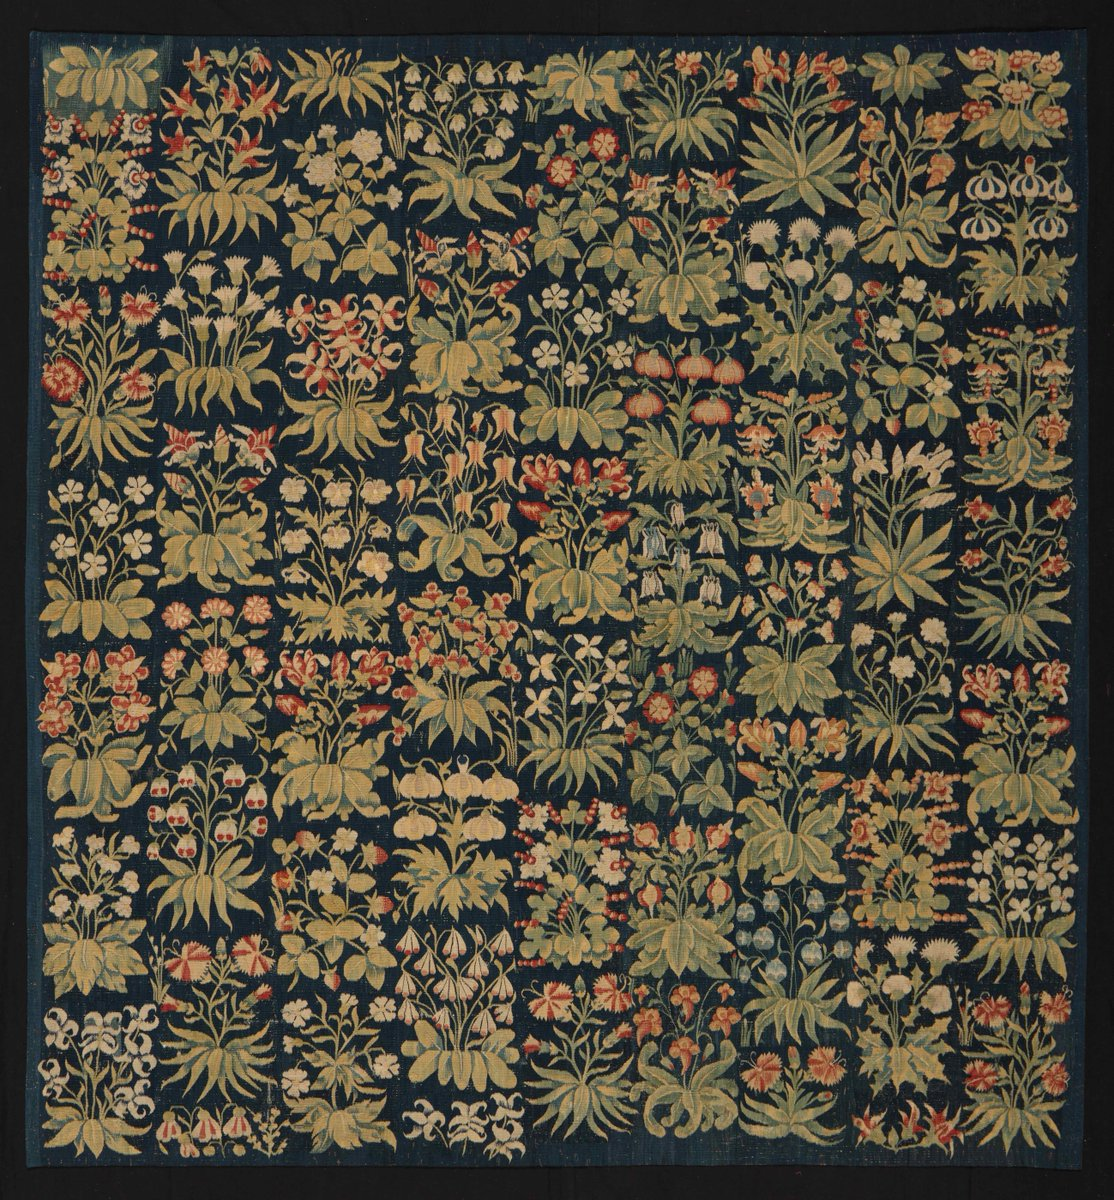 1000 flowers and plants bedeck this magnificent wool and silk #tapestry from Southern Netherlands of the early 16th century, when the #millefleurs style enjoyed its greatest popularity. #Exhibit of #DeWitFineTapestries at BRAFA 2019, 26Jan - 3Feb, Tour&Taxis #Brusselspic.twitter.com/KnVjsEaCNS